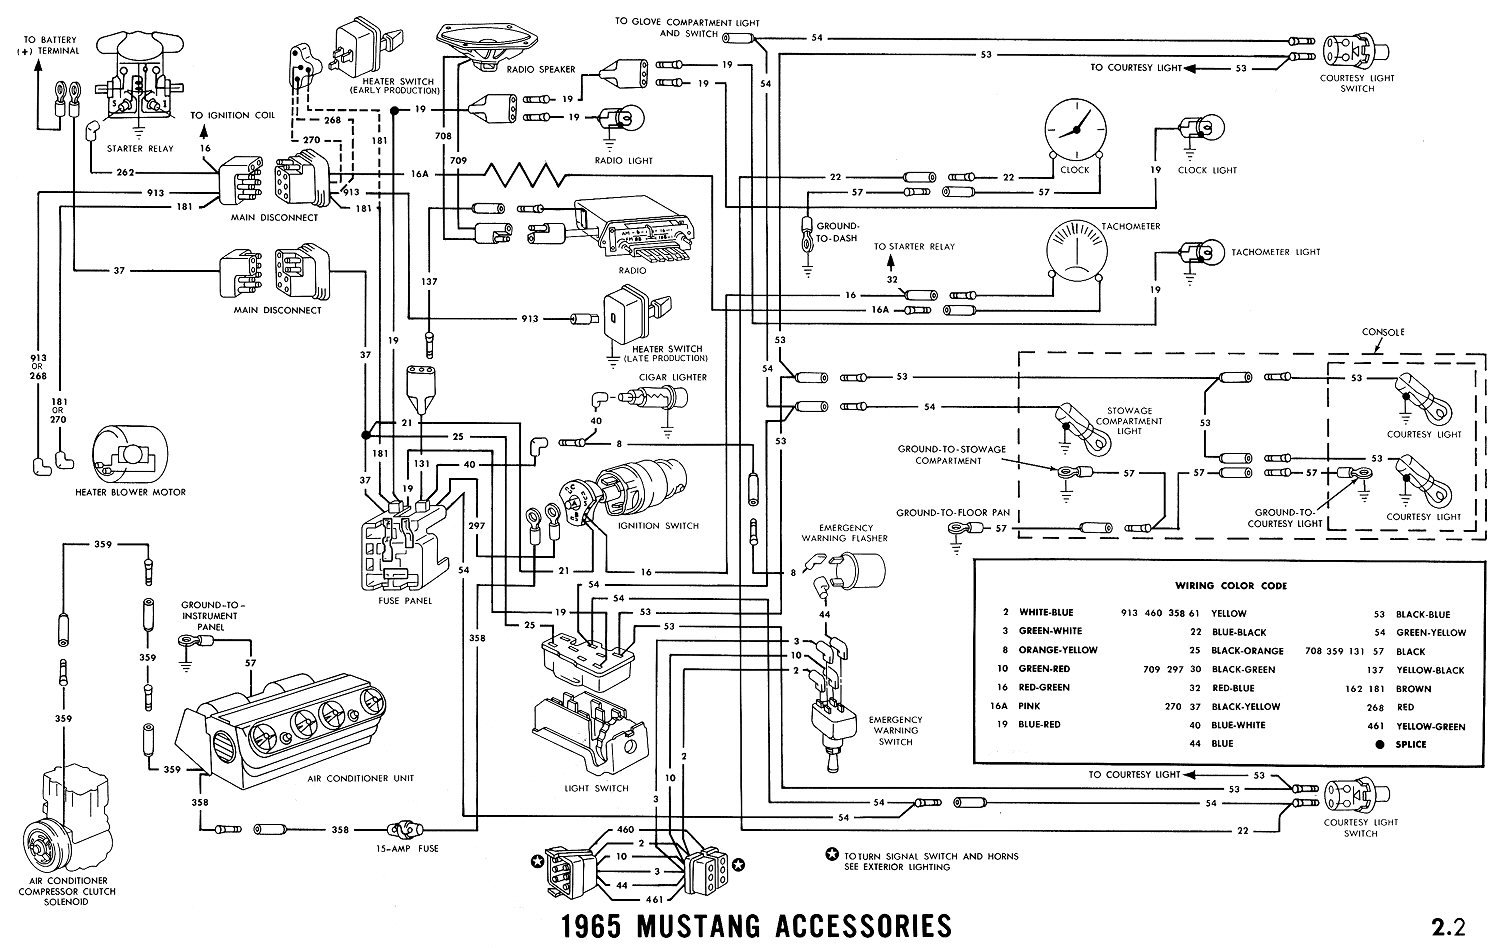 Mustang Radio Wiring Diagram Schematics Ford Harness 65 Colors Forum Pt Cruiser Click Image For Larger Version